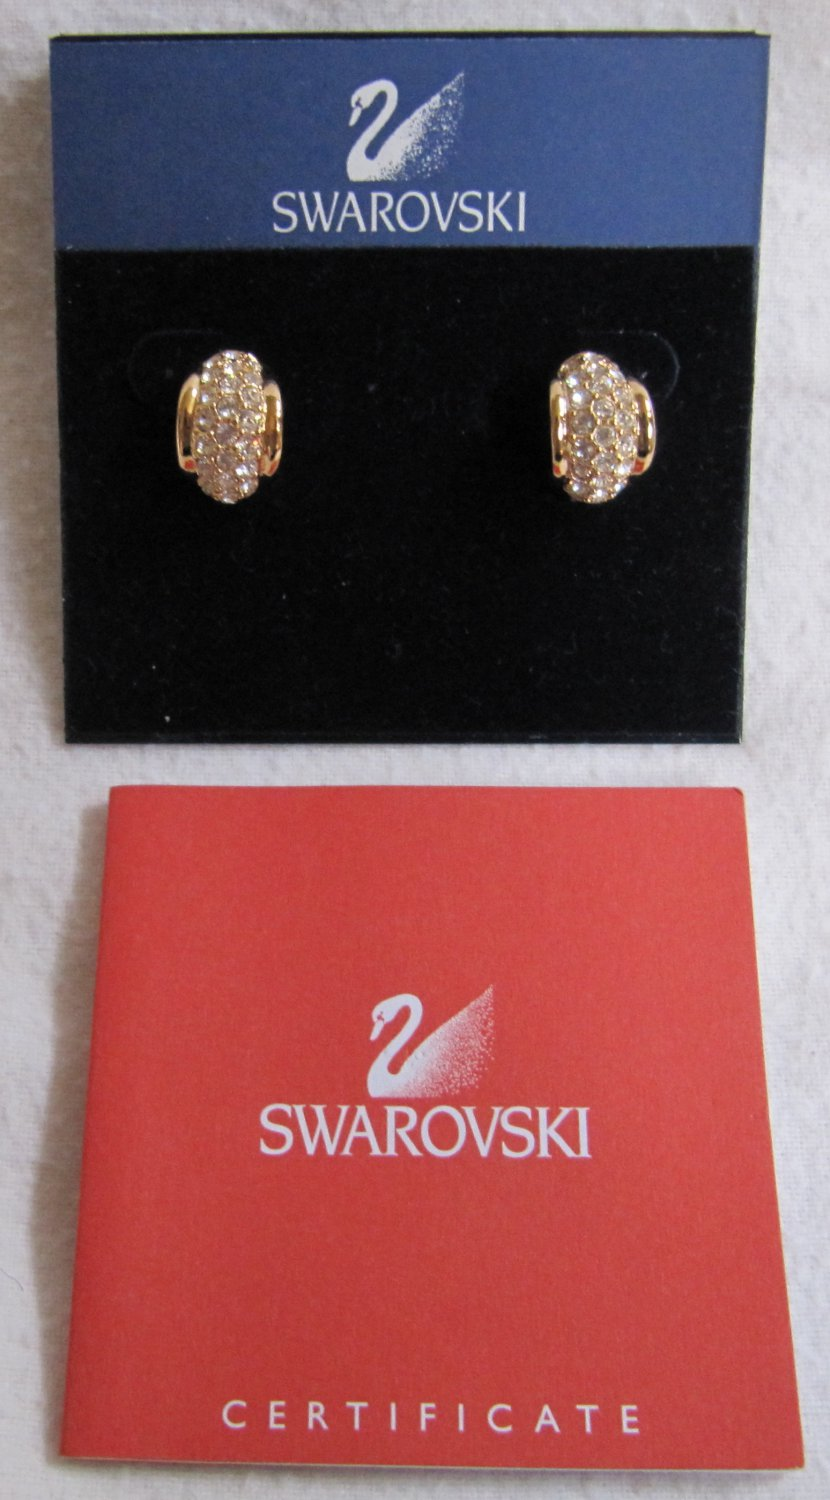 SWAROVSKI Crystal 14k Gold Posts Pierced Earrings with Certificate In Gift Box Never Worn .625 Inch